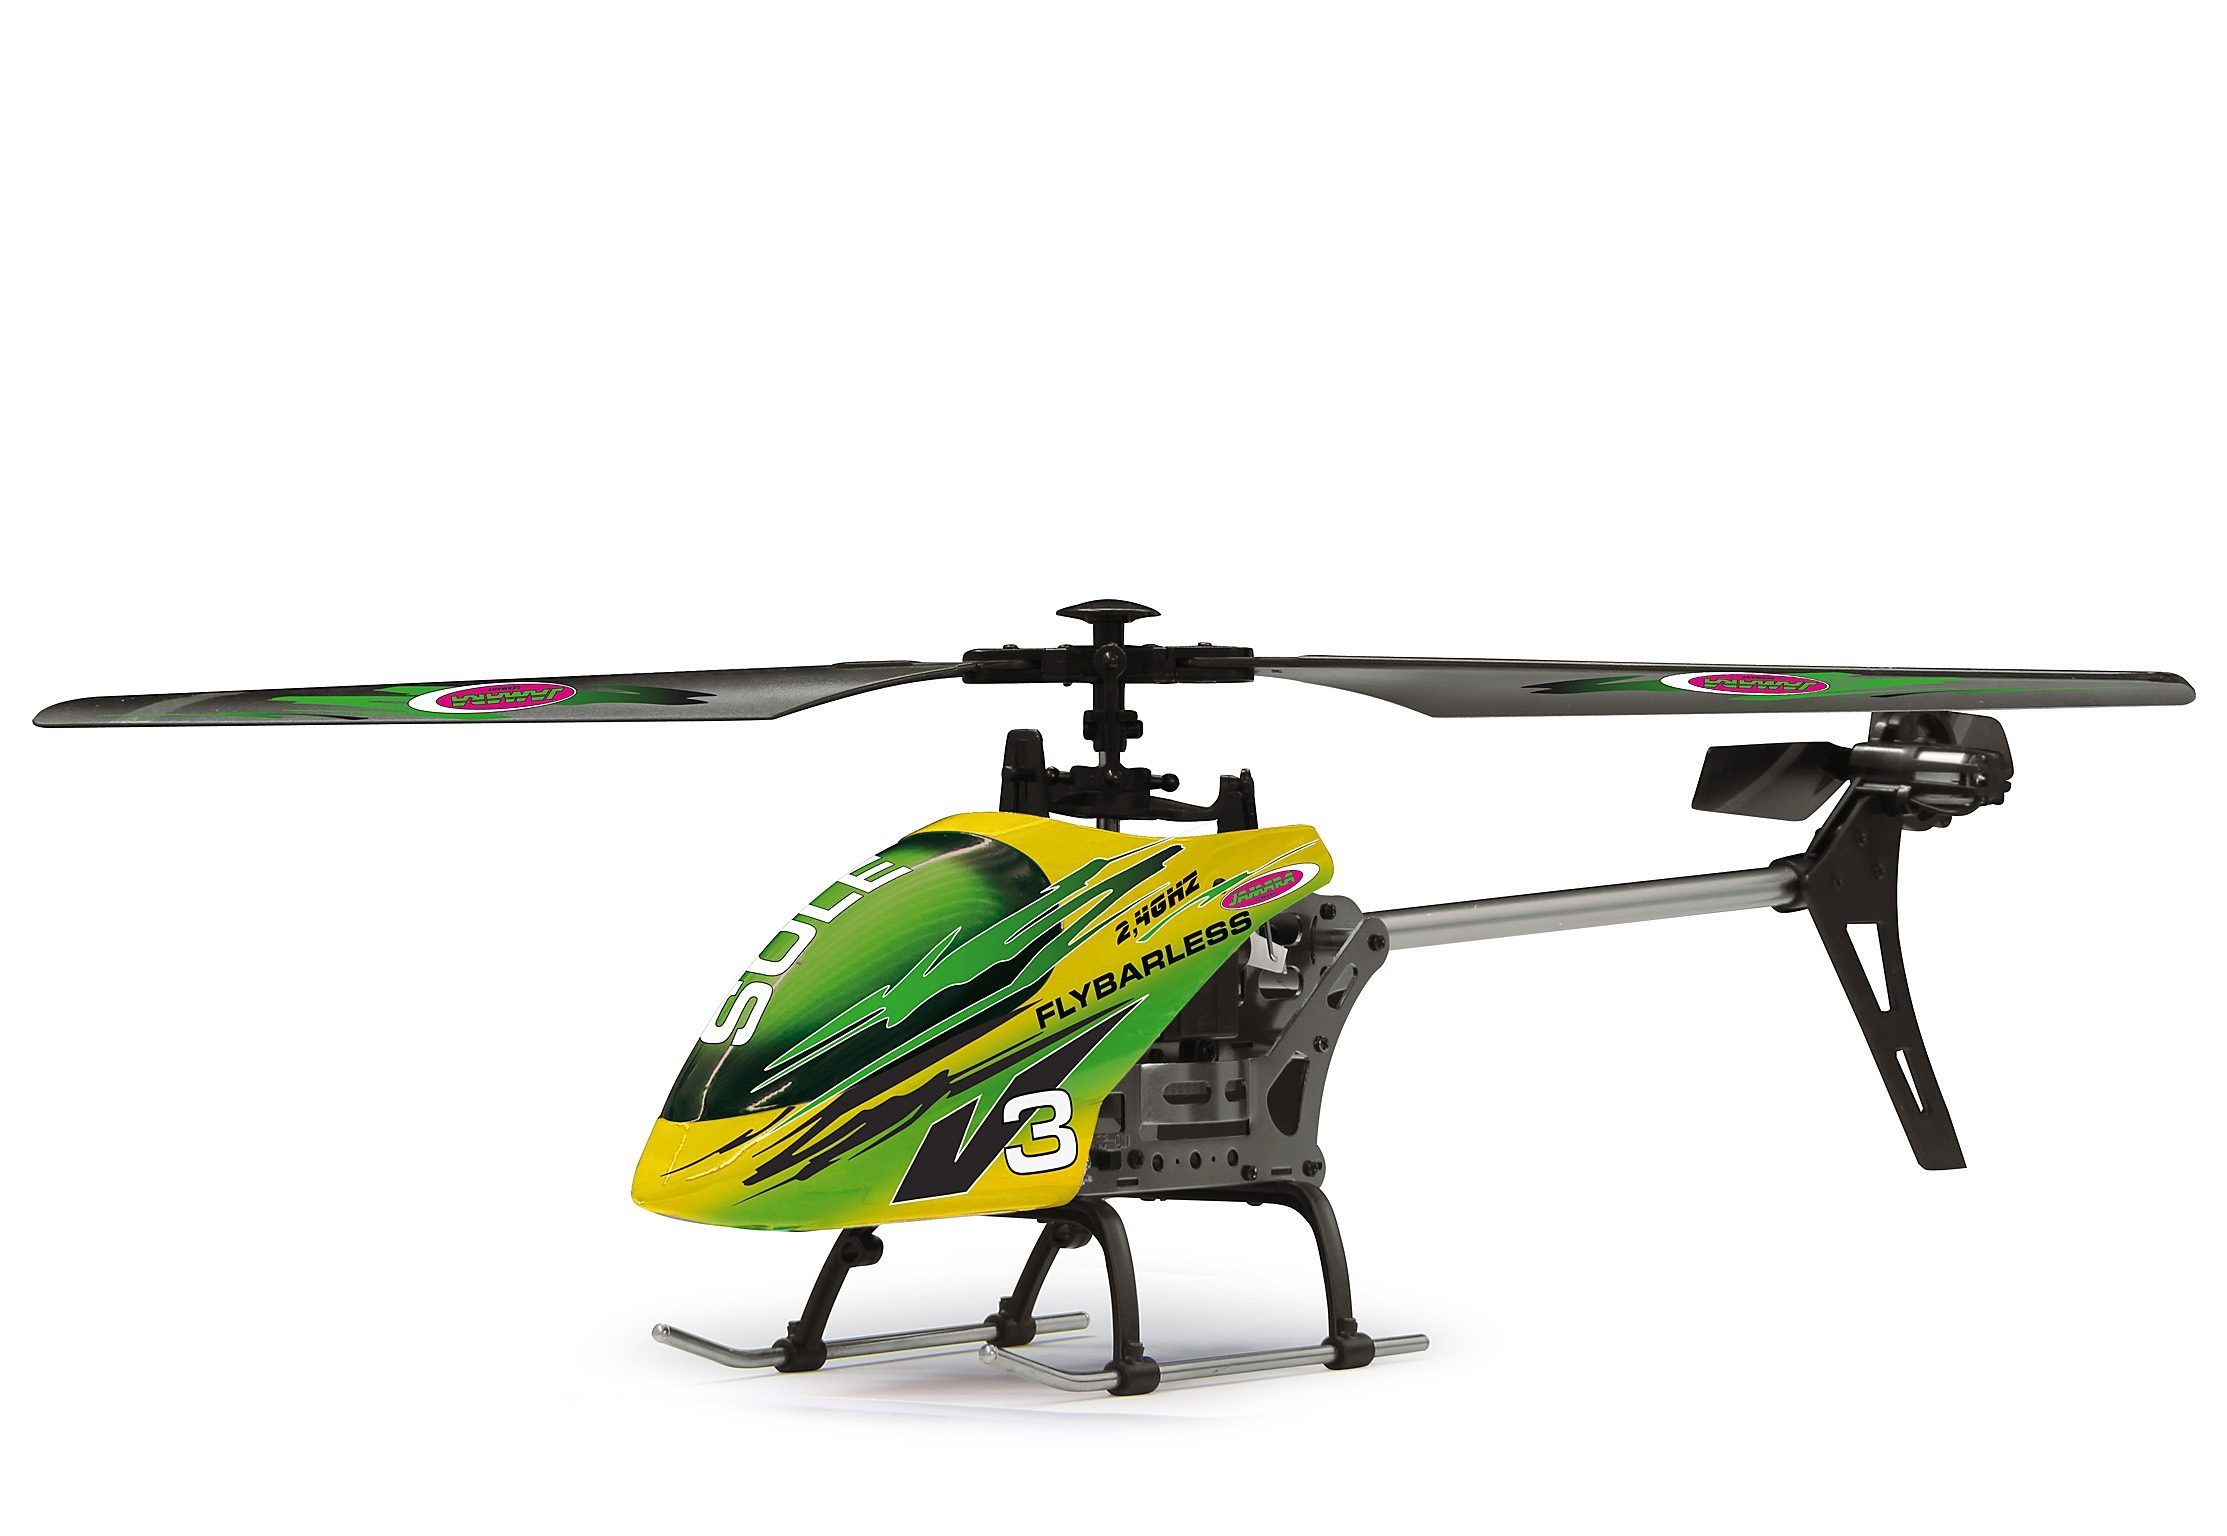 JAMARA RC Helikopter, »Sole V3 FBL 2,4 GHz«